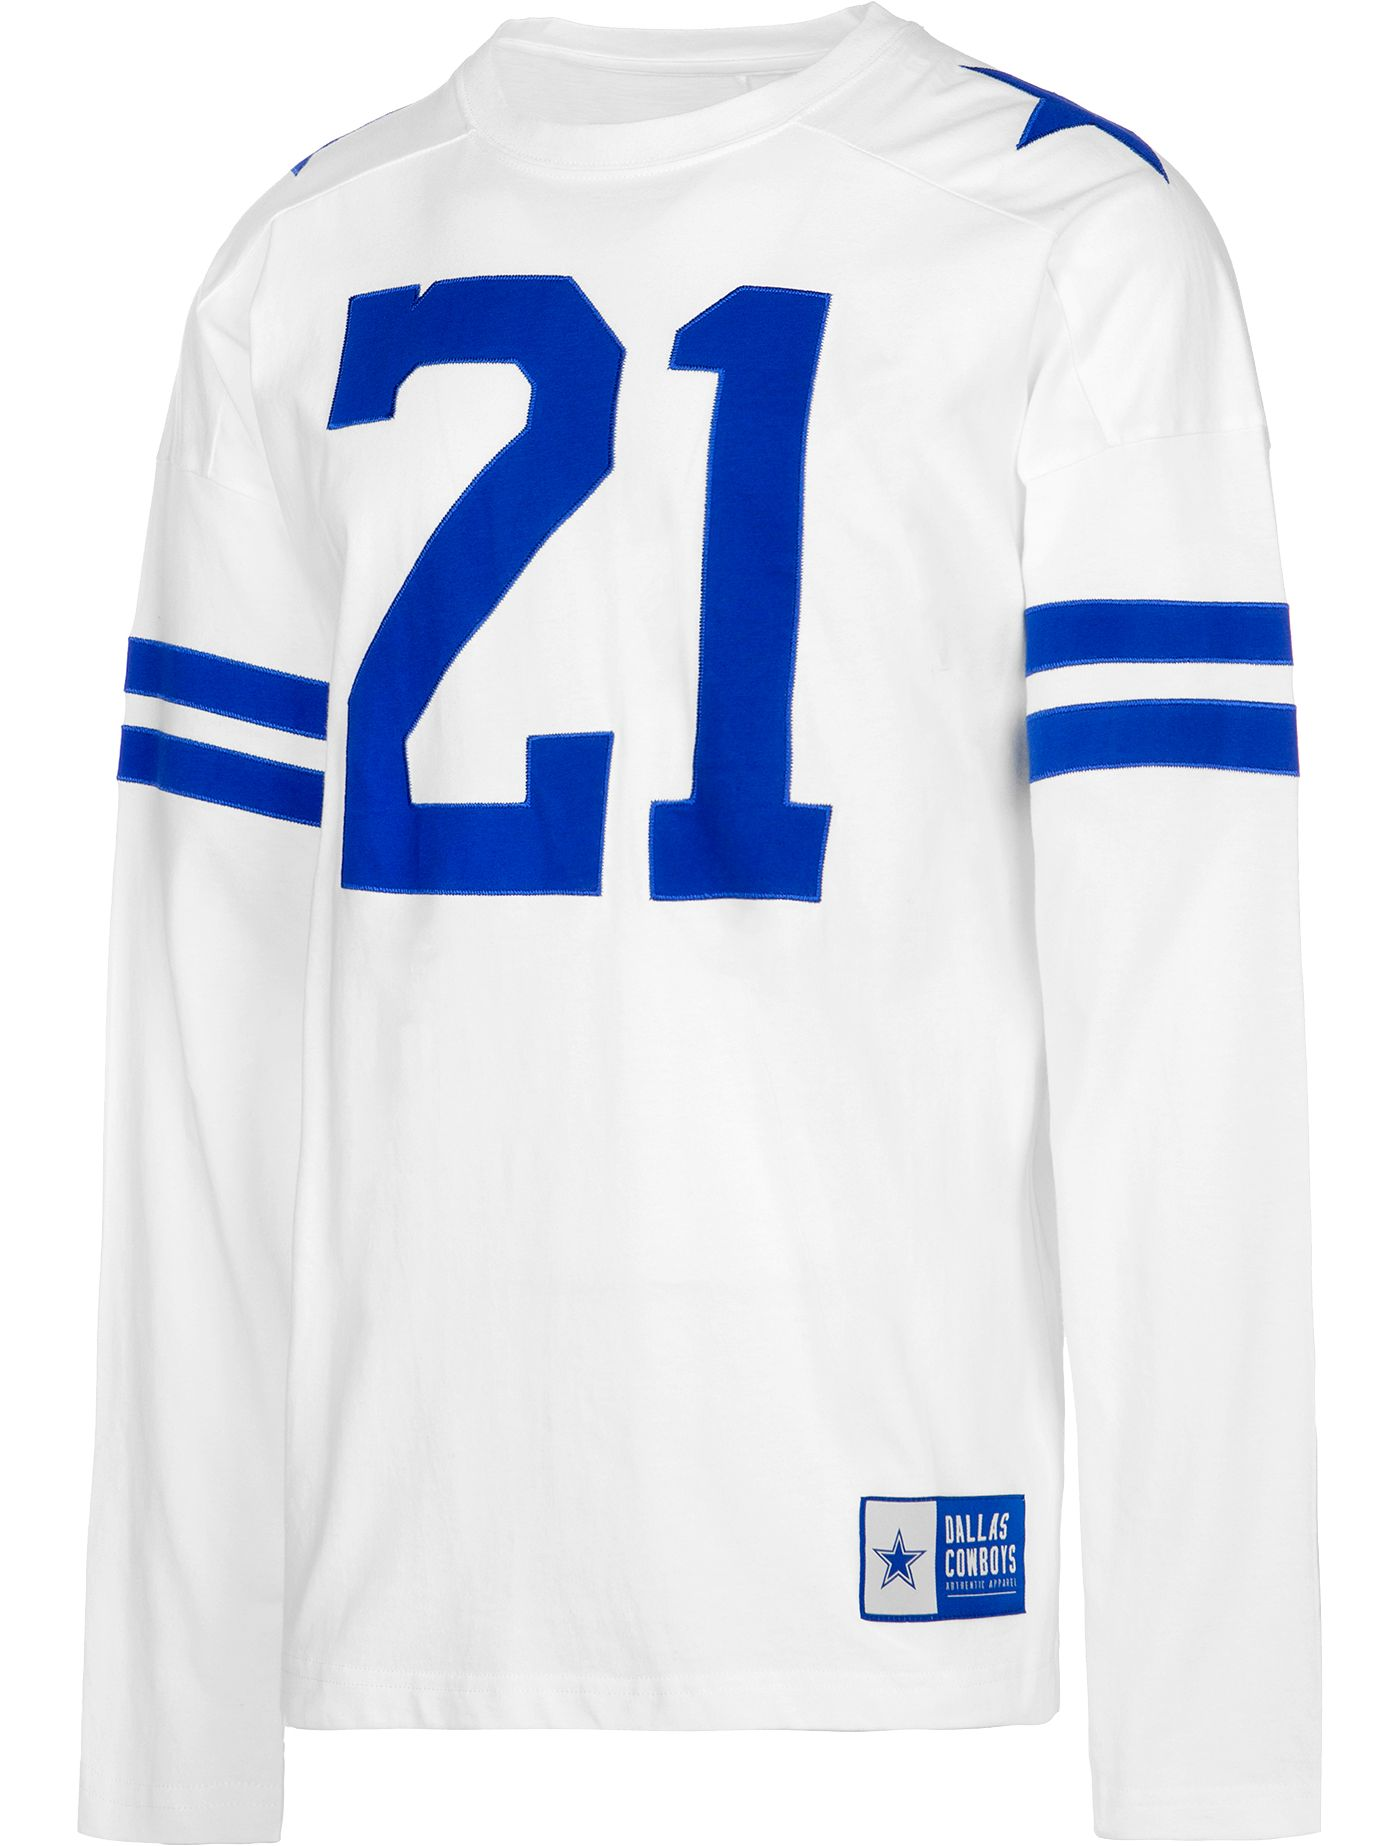 Dallas Cowboys Merchandising Men's Ezekiel Elliott #21 Retro Long Sleeve White Shirt